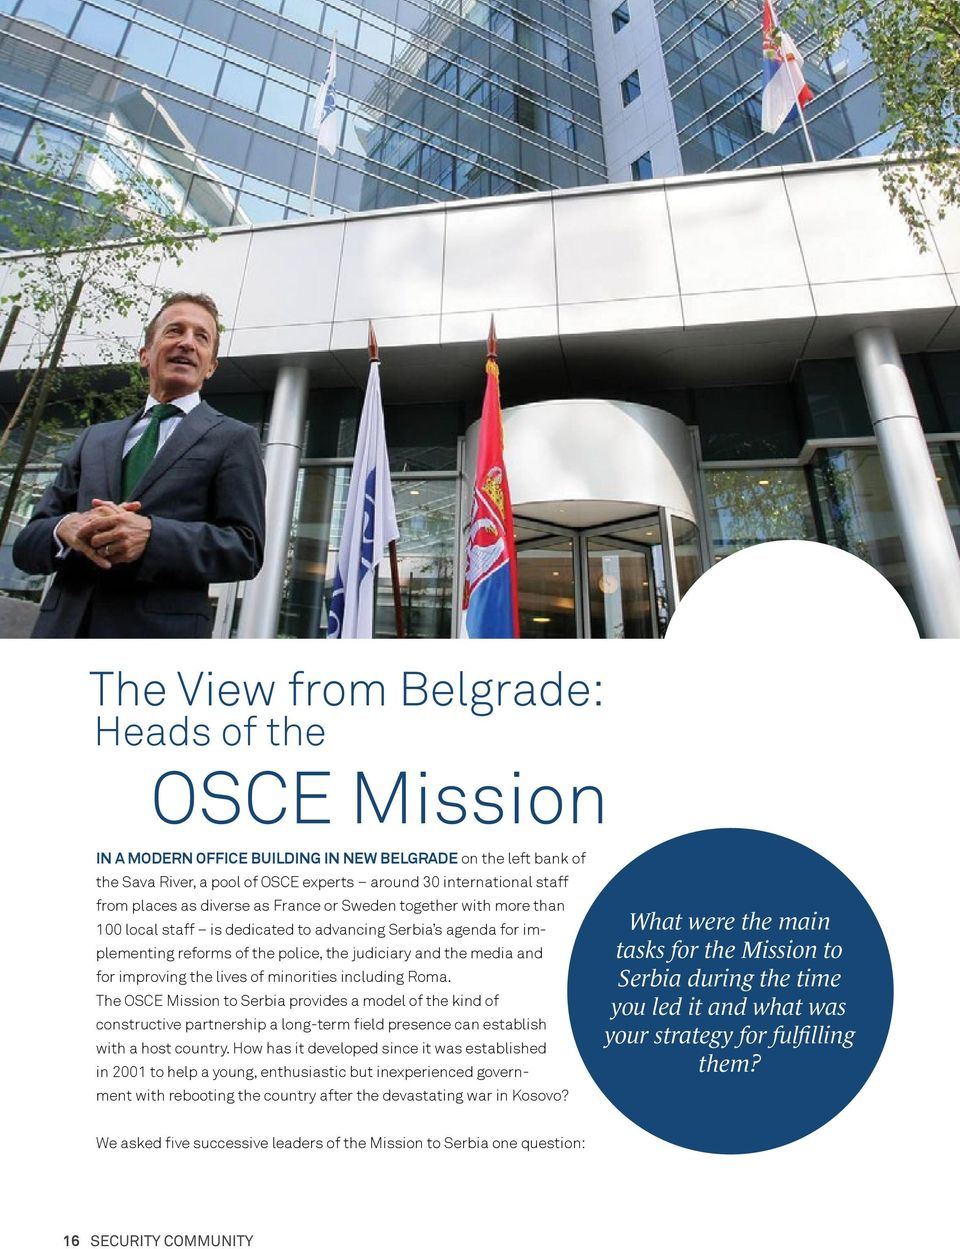 lives of minorities including Roma. The OSCE Mission to Serbia provides a model of the kind of constructive partnership a long-term field presence can establish with a host country.